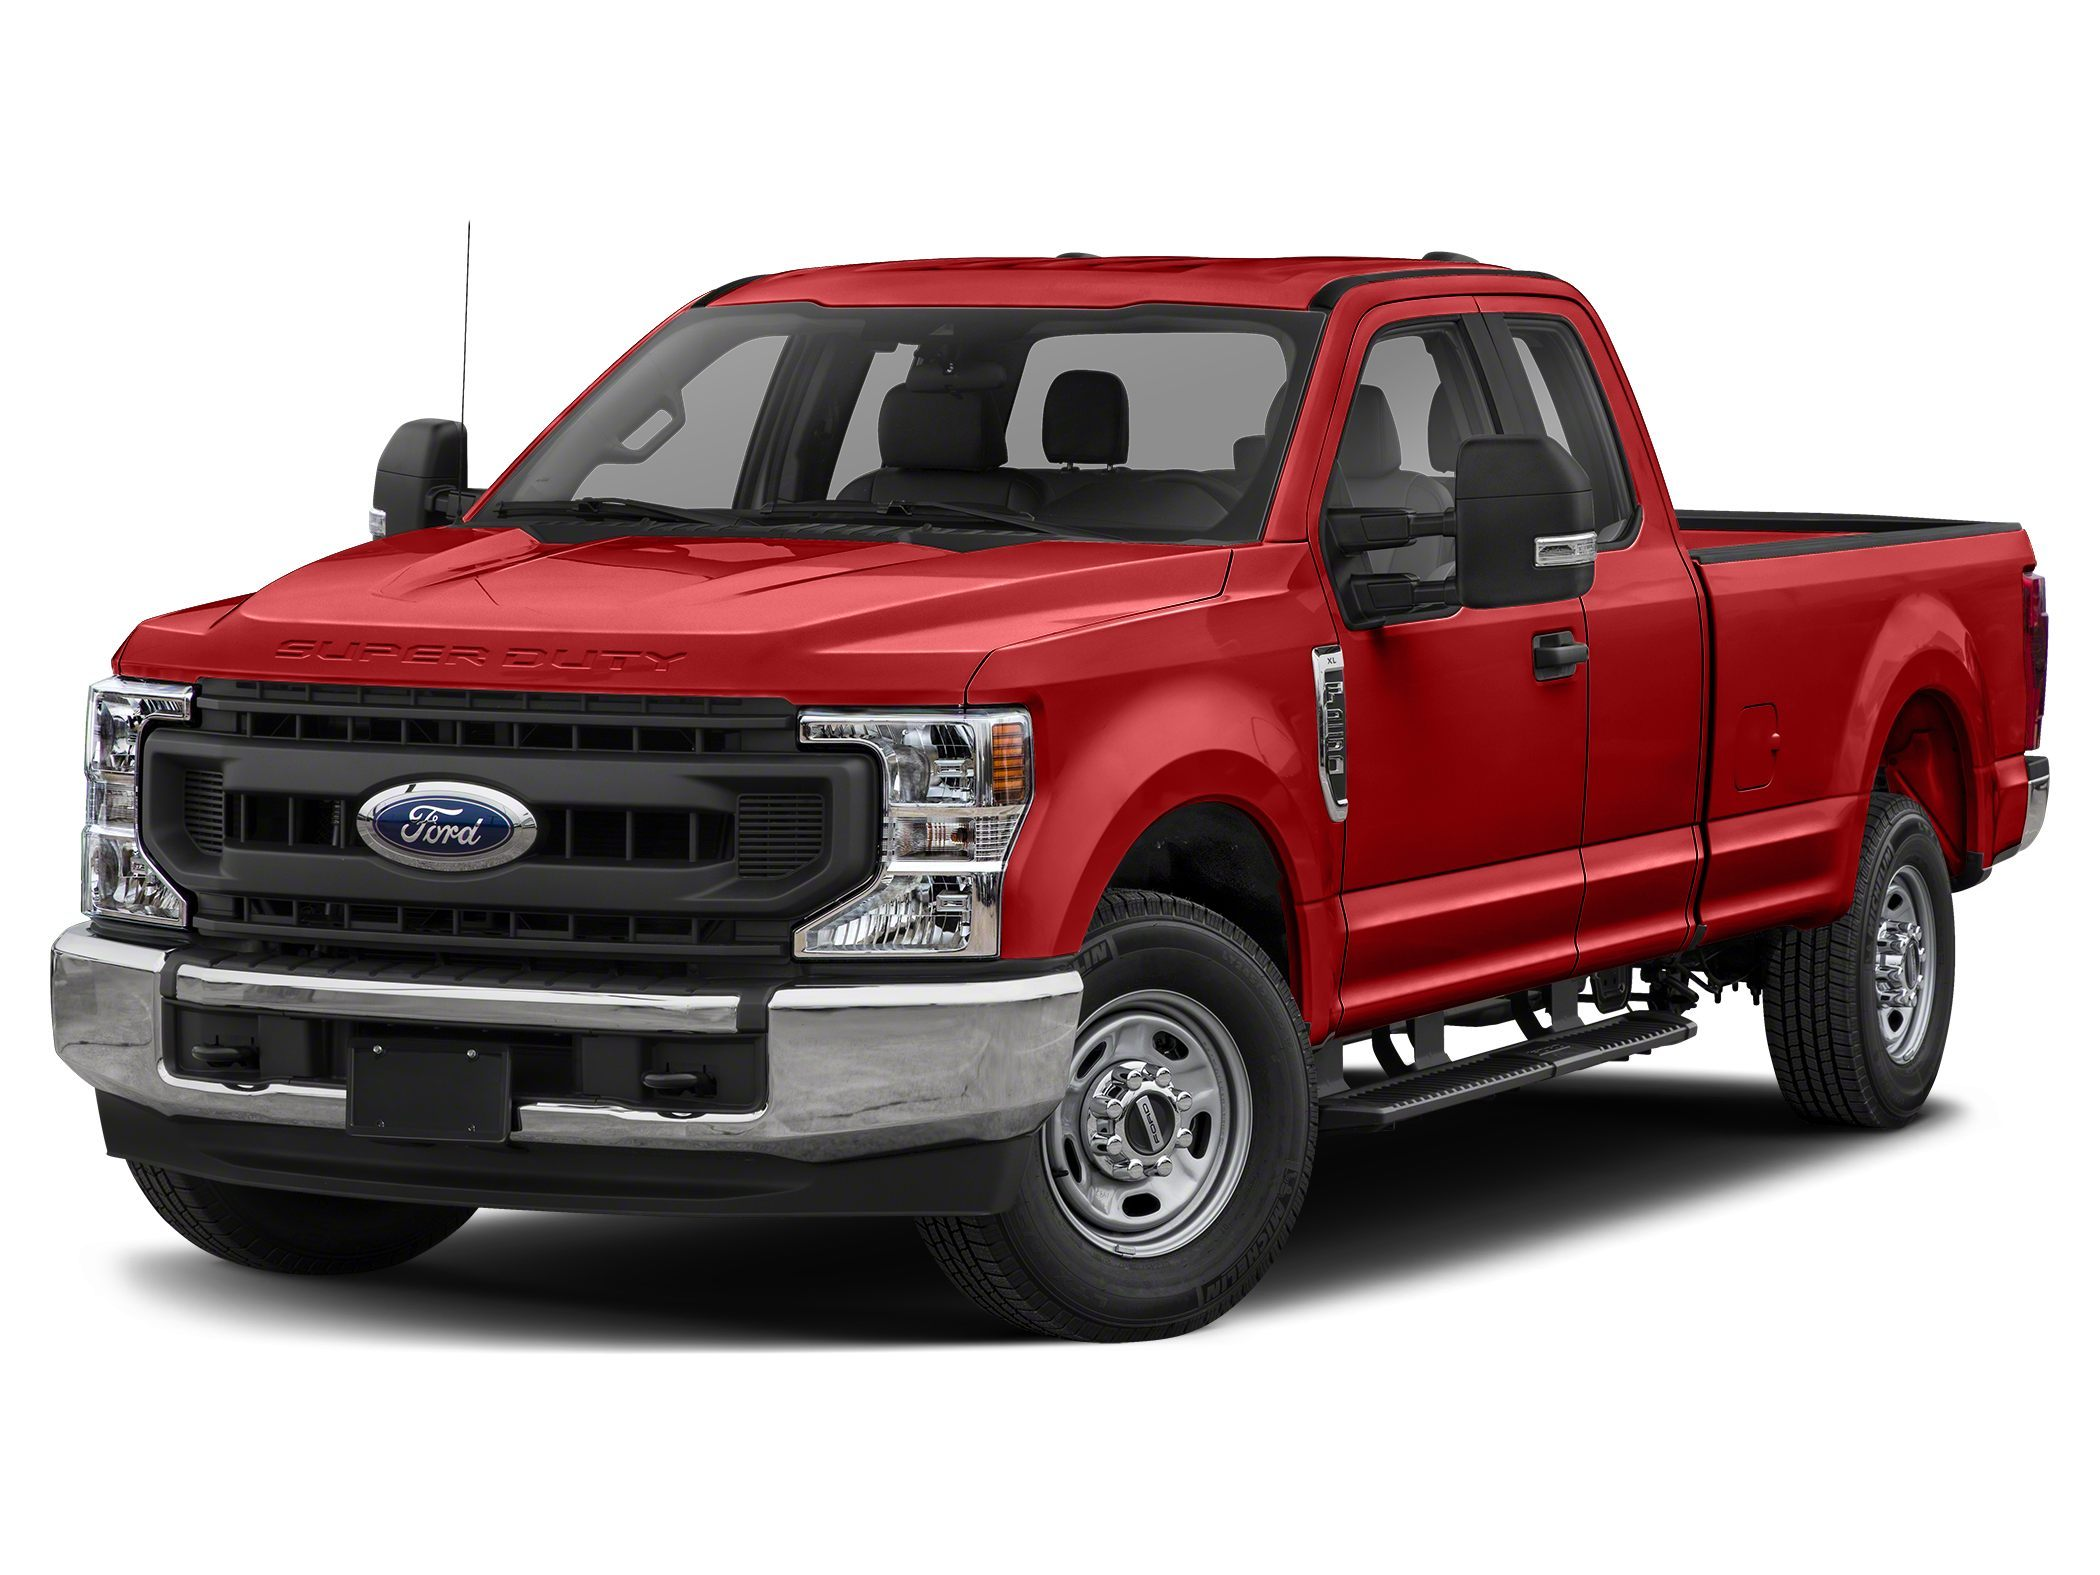 2022 Ford F-350 Extended Cab Truck